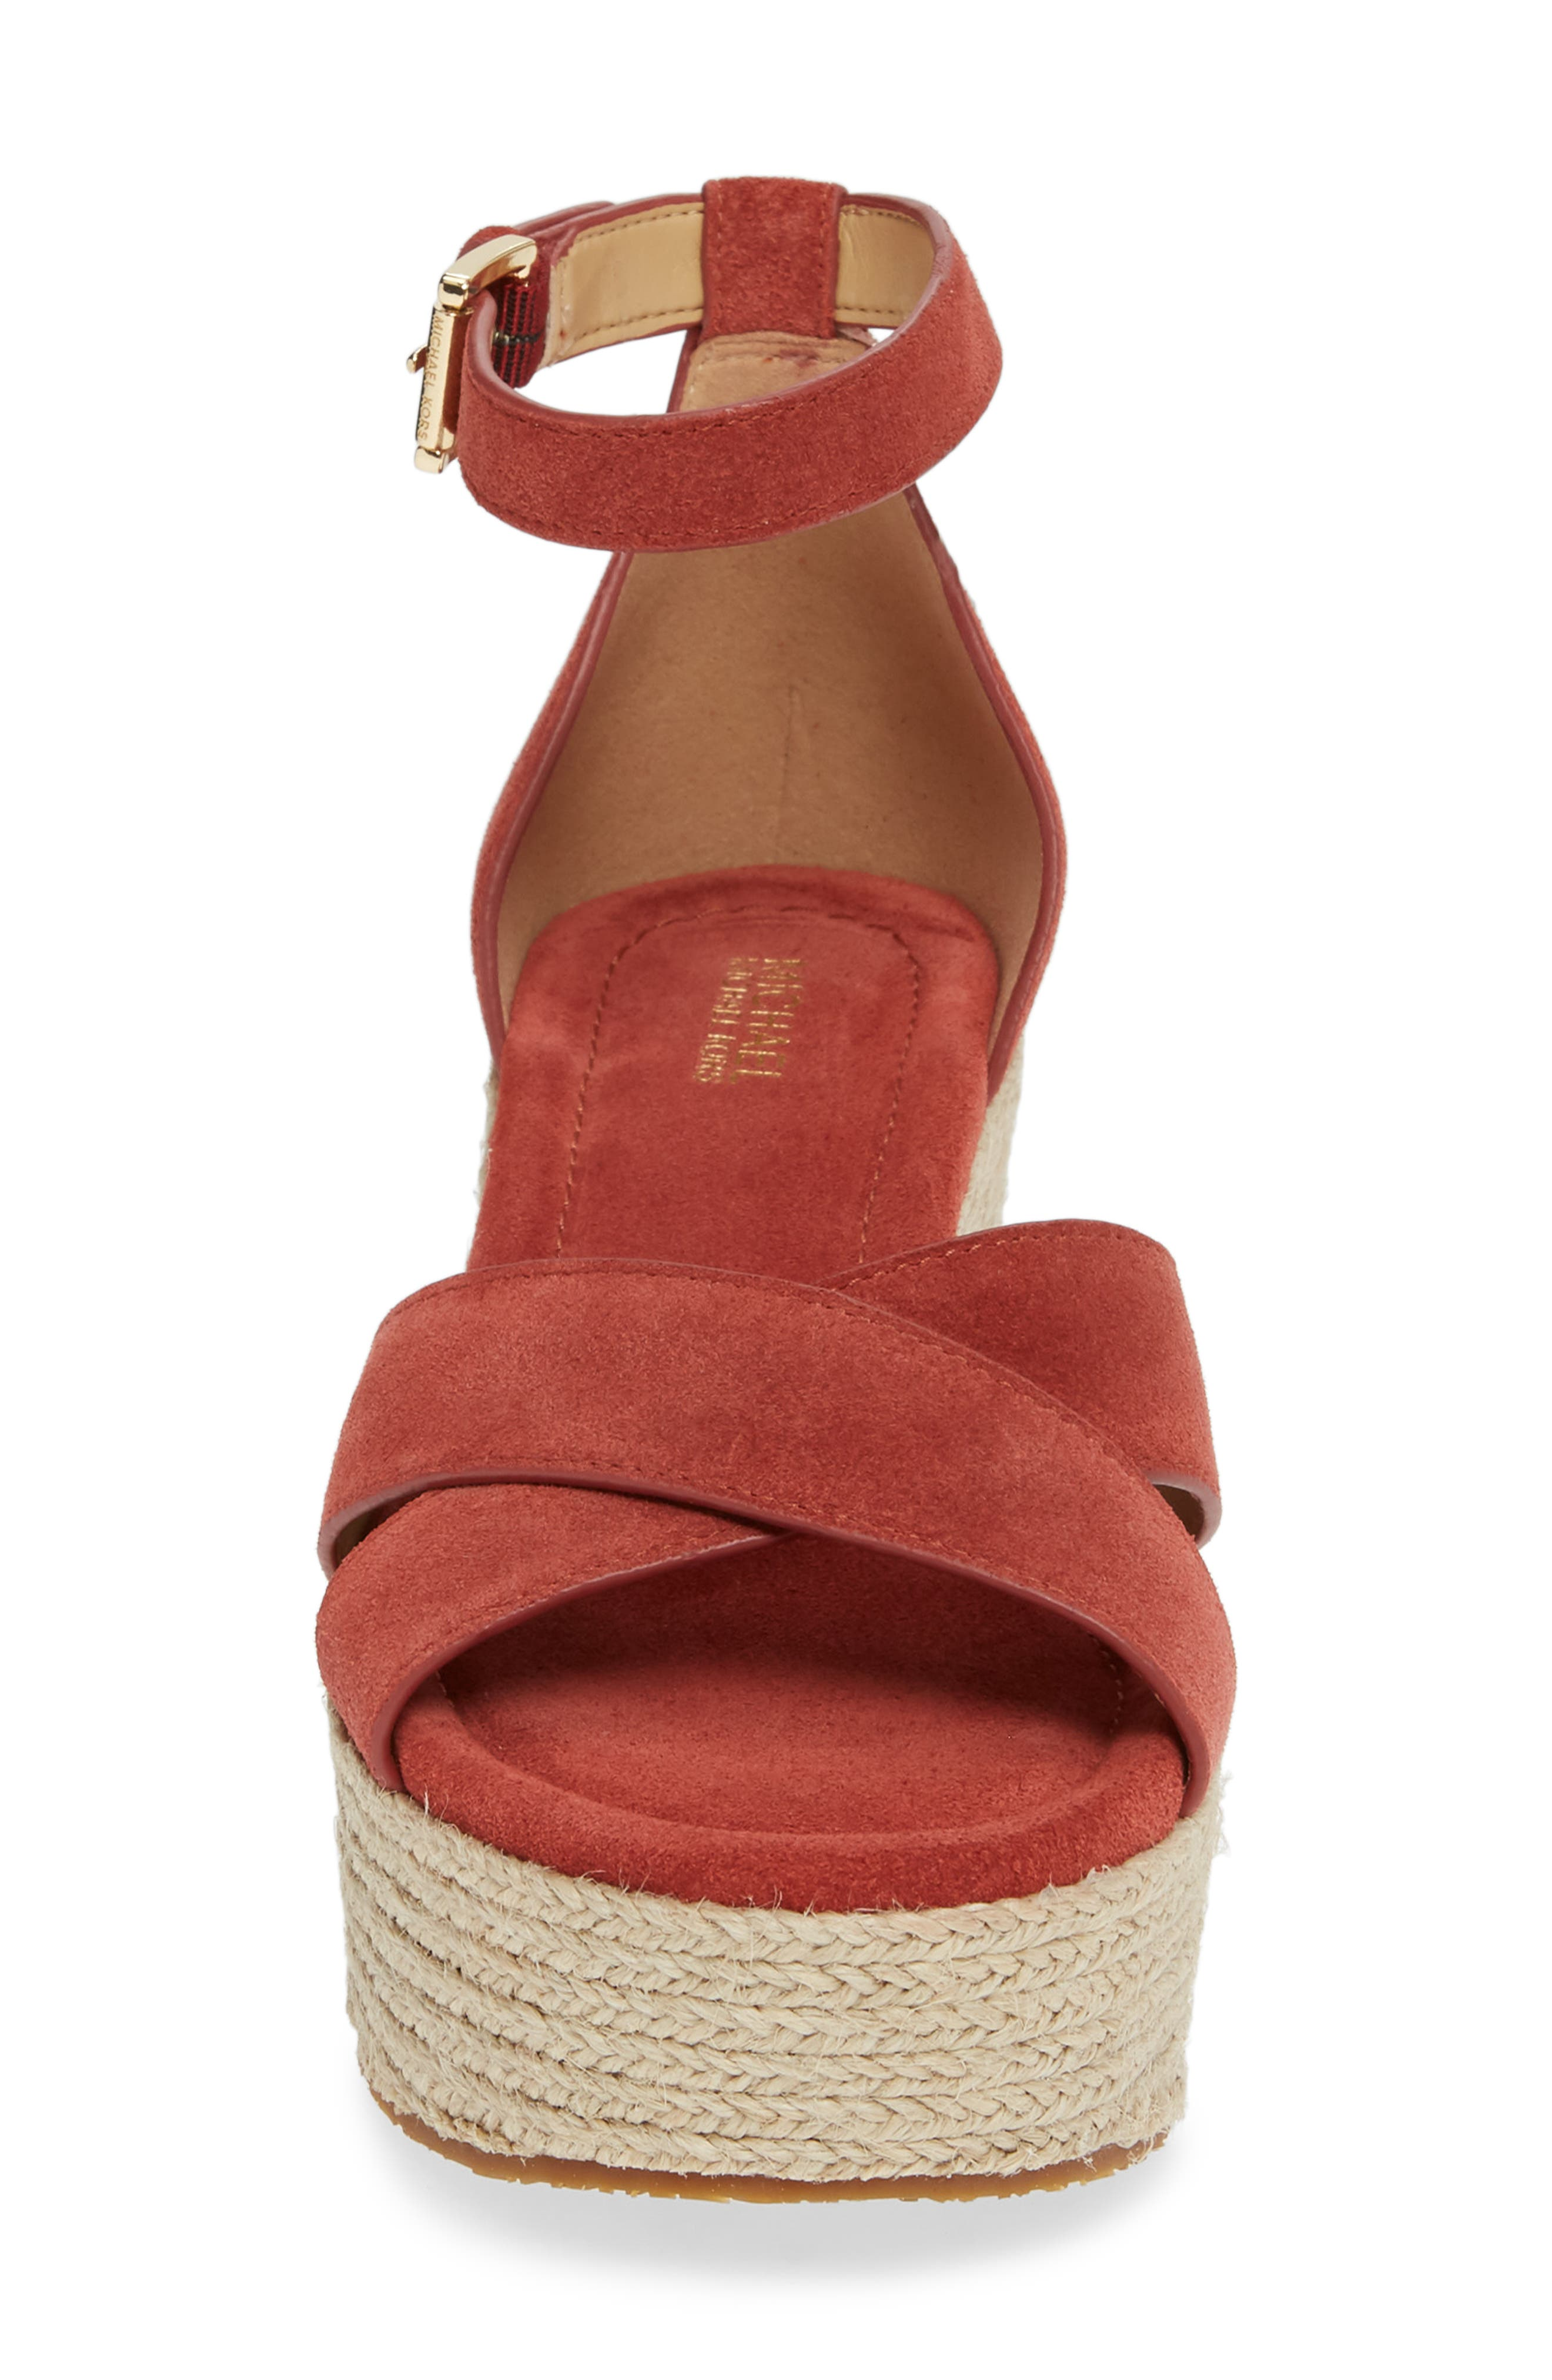 MICHAEL MICHAEL KORS, Desiree Jute Espadrille Wedge, Alternate thumbnail 4, color, TERRACOTTA SUEDE